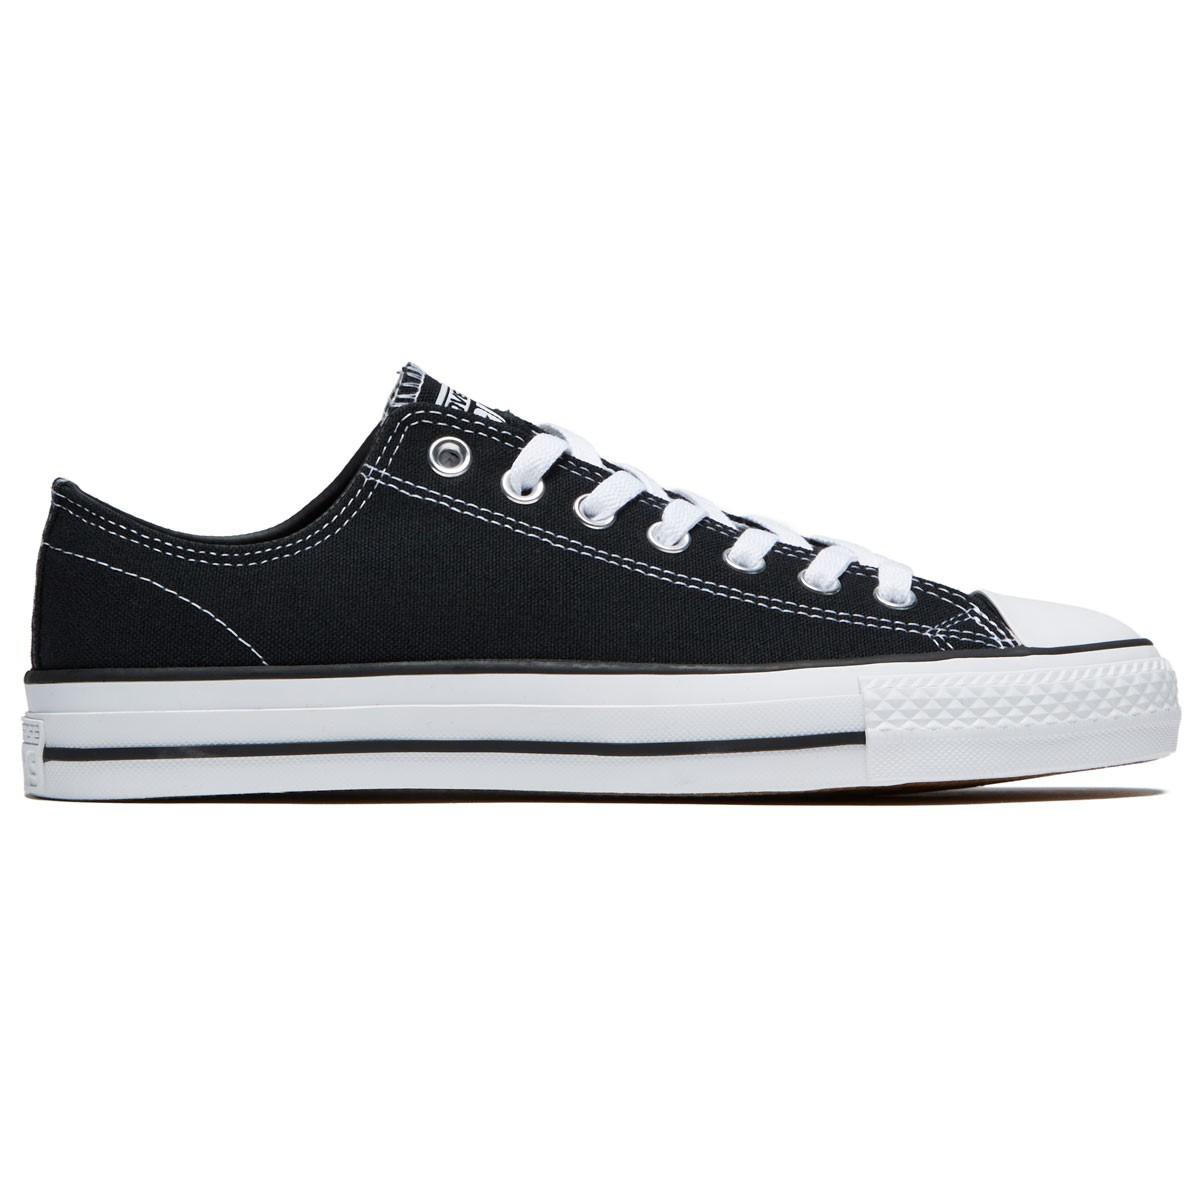 Converse Zoom Air CTAS Pro Ox Shoes - Black White - 7.5 fa706182cfcfd